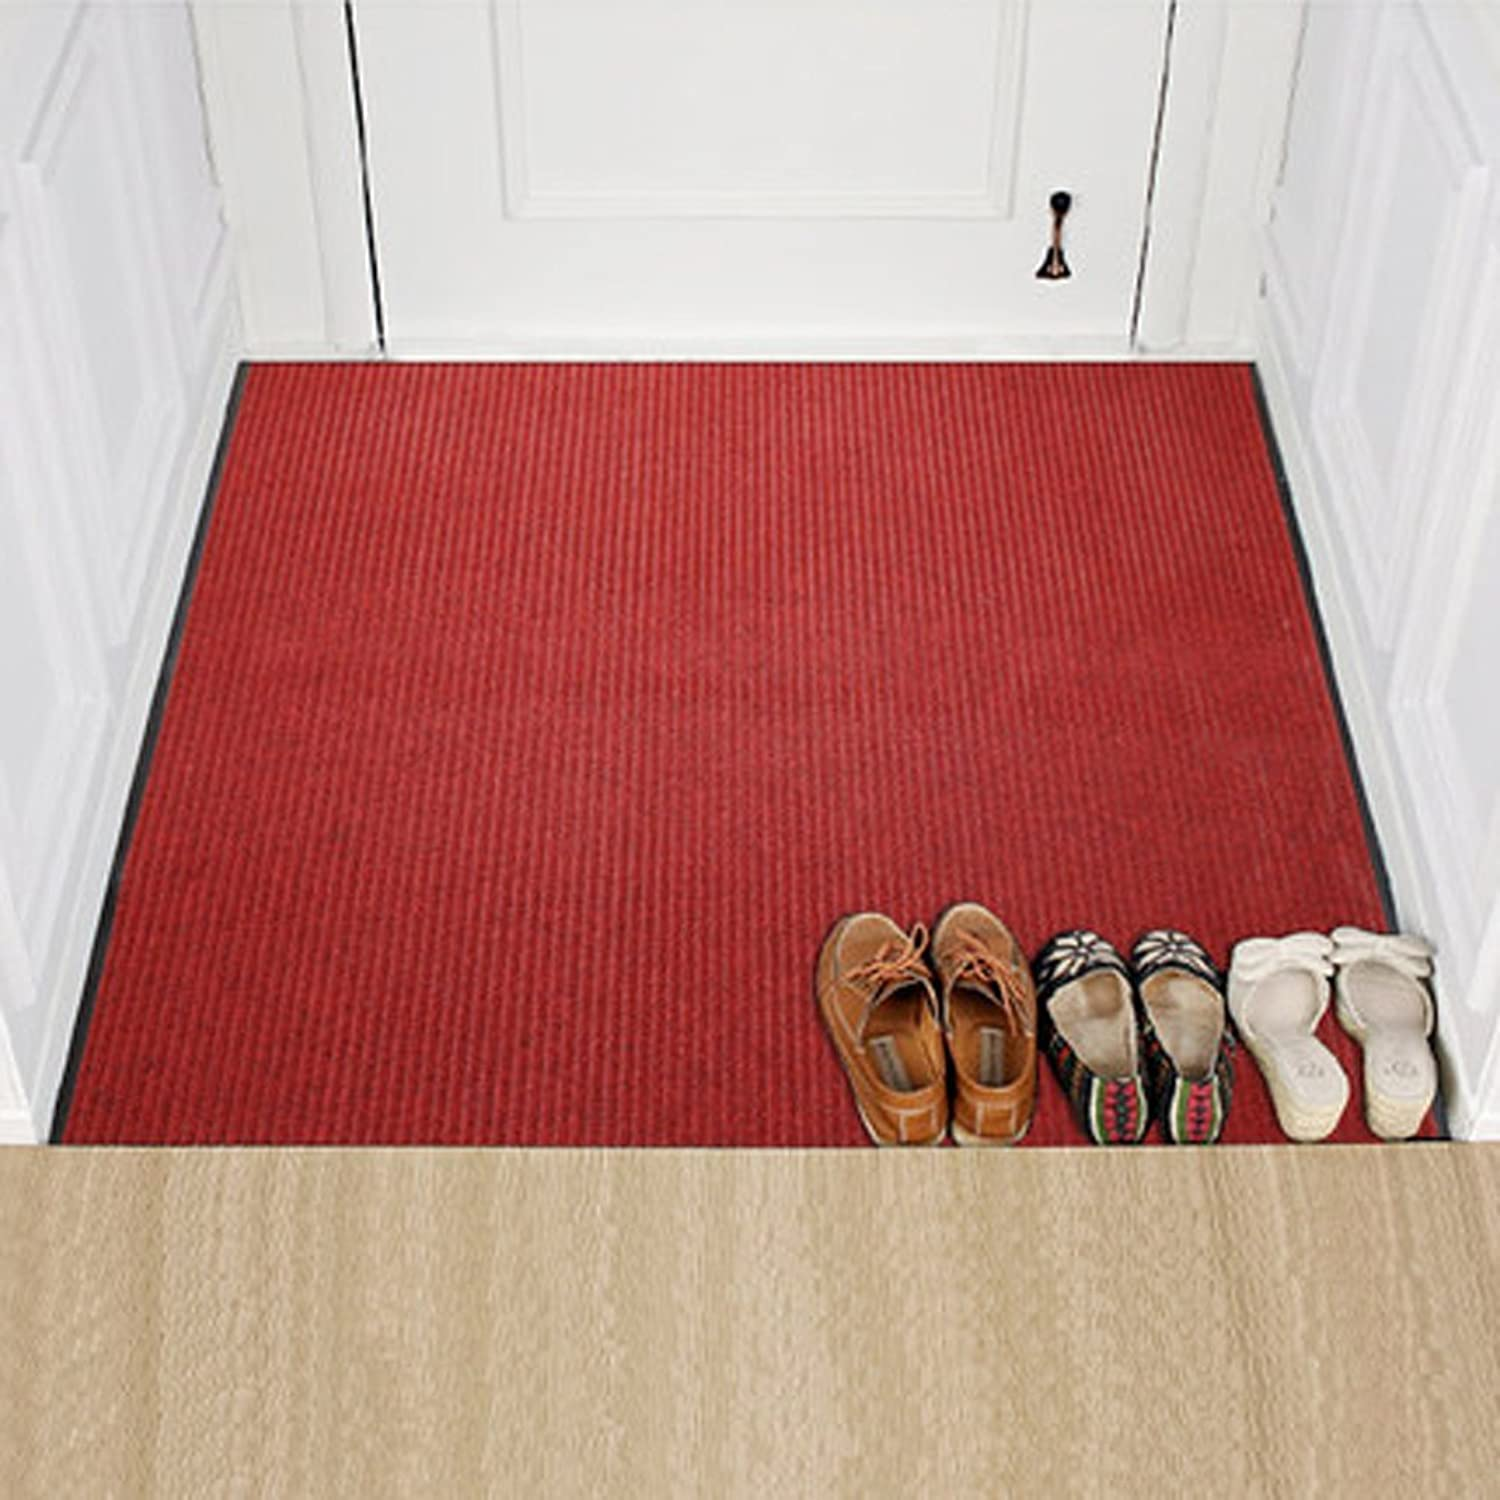 Modern Entrance Mat Premium Entry Mat for Home and Business-Absorbent,Non Slip Dirt Trapper Mats-red 80x120cm(31x47inch)